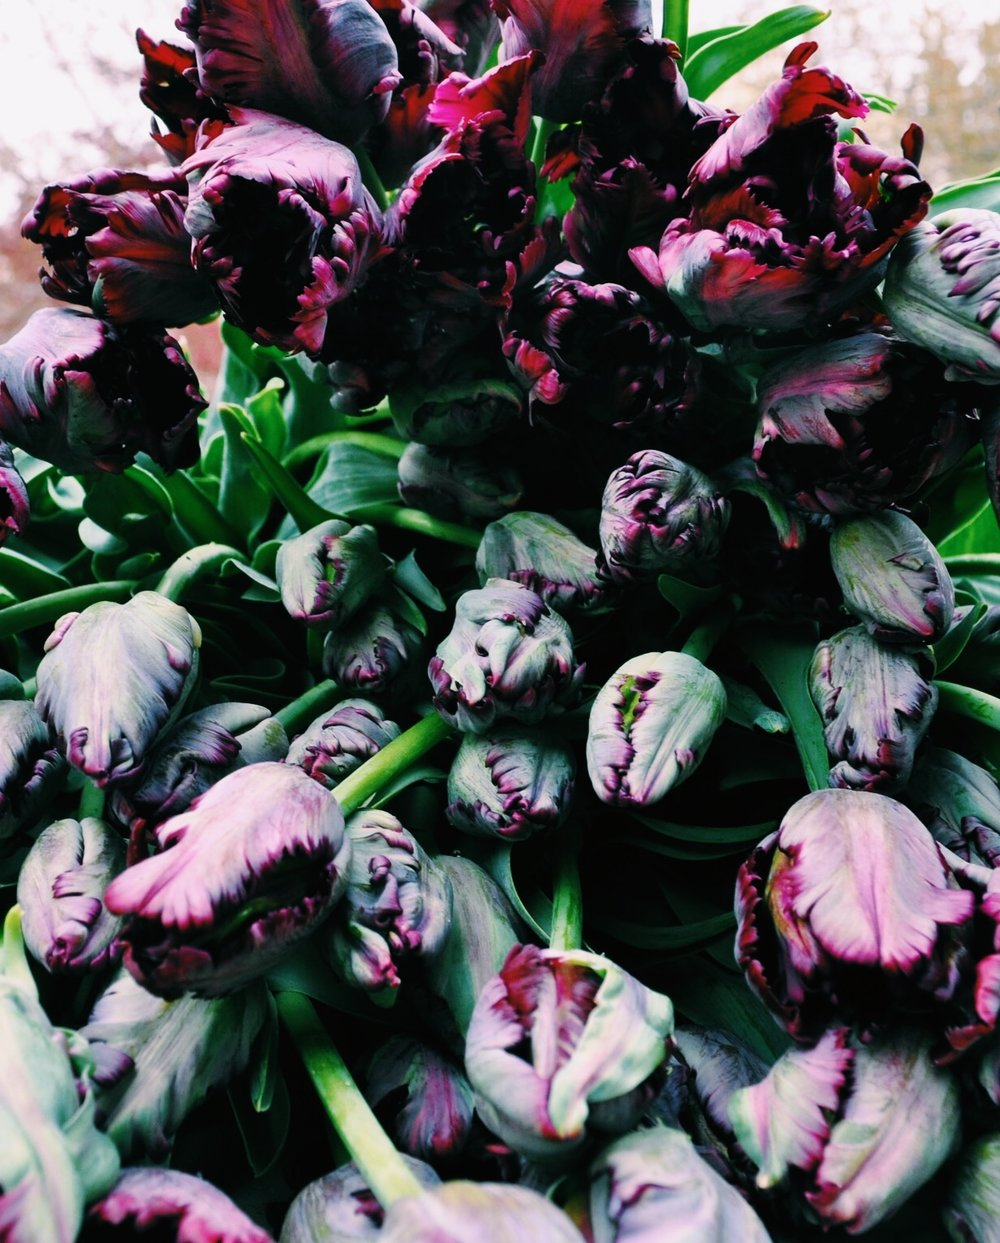 Black parrot tulips, I mean seriously?!